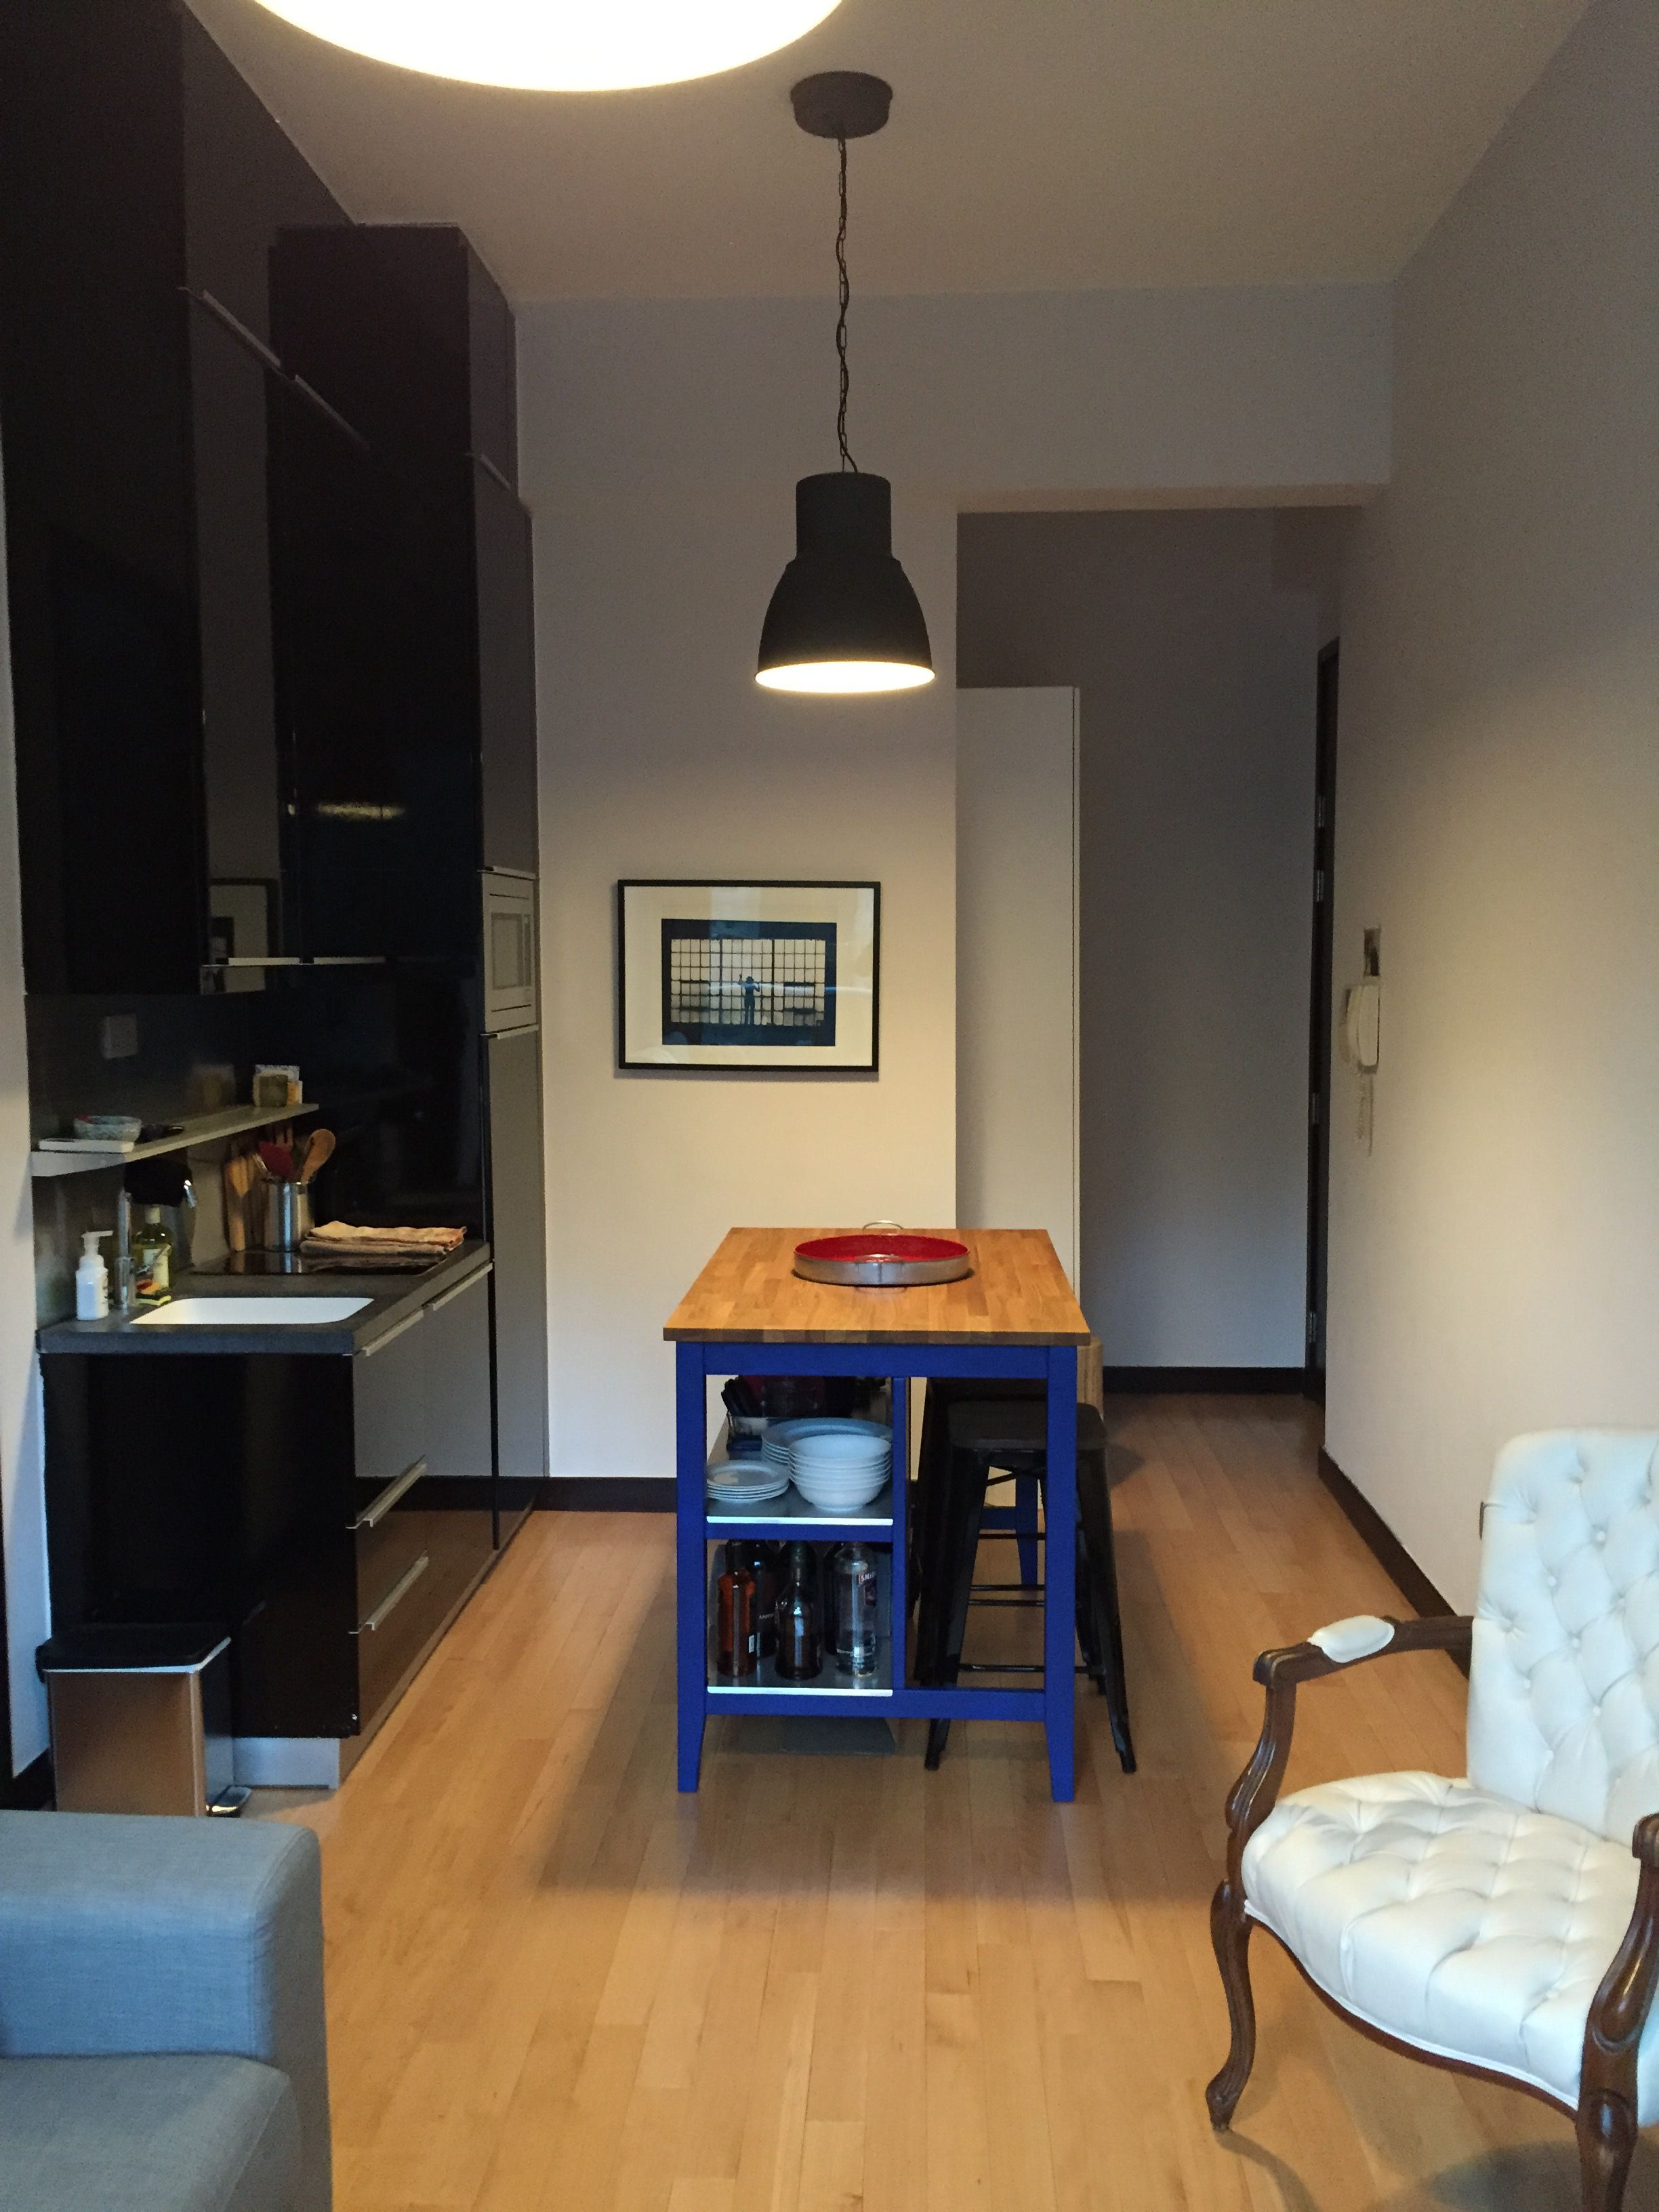 440 sq ft apartment kitchen Ikea Stenstorp Hong Kong Apartment